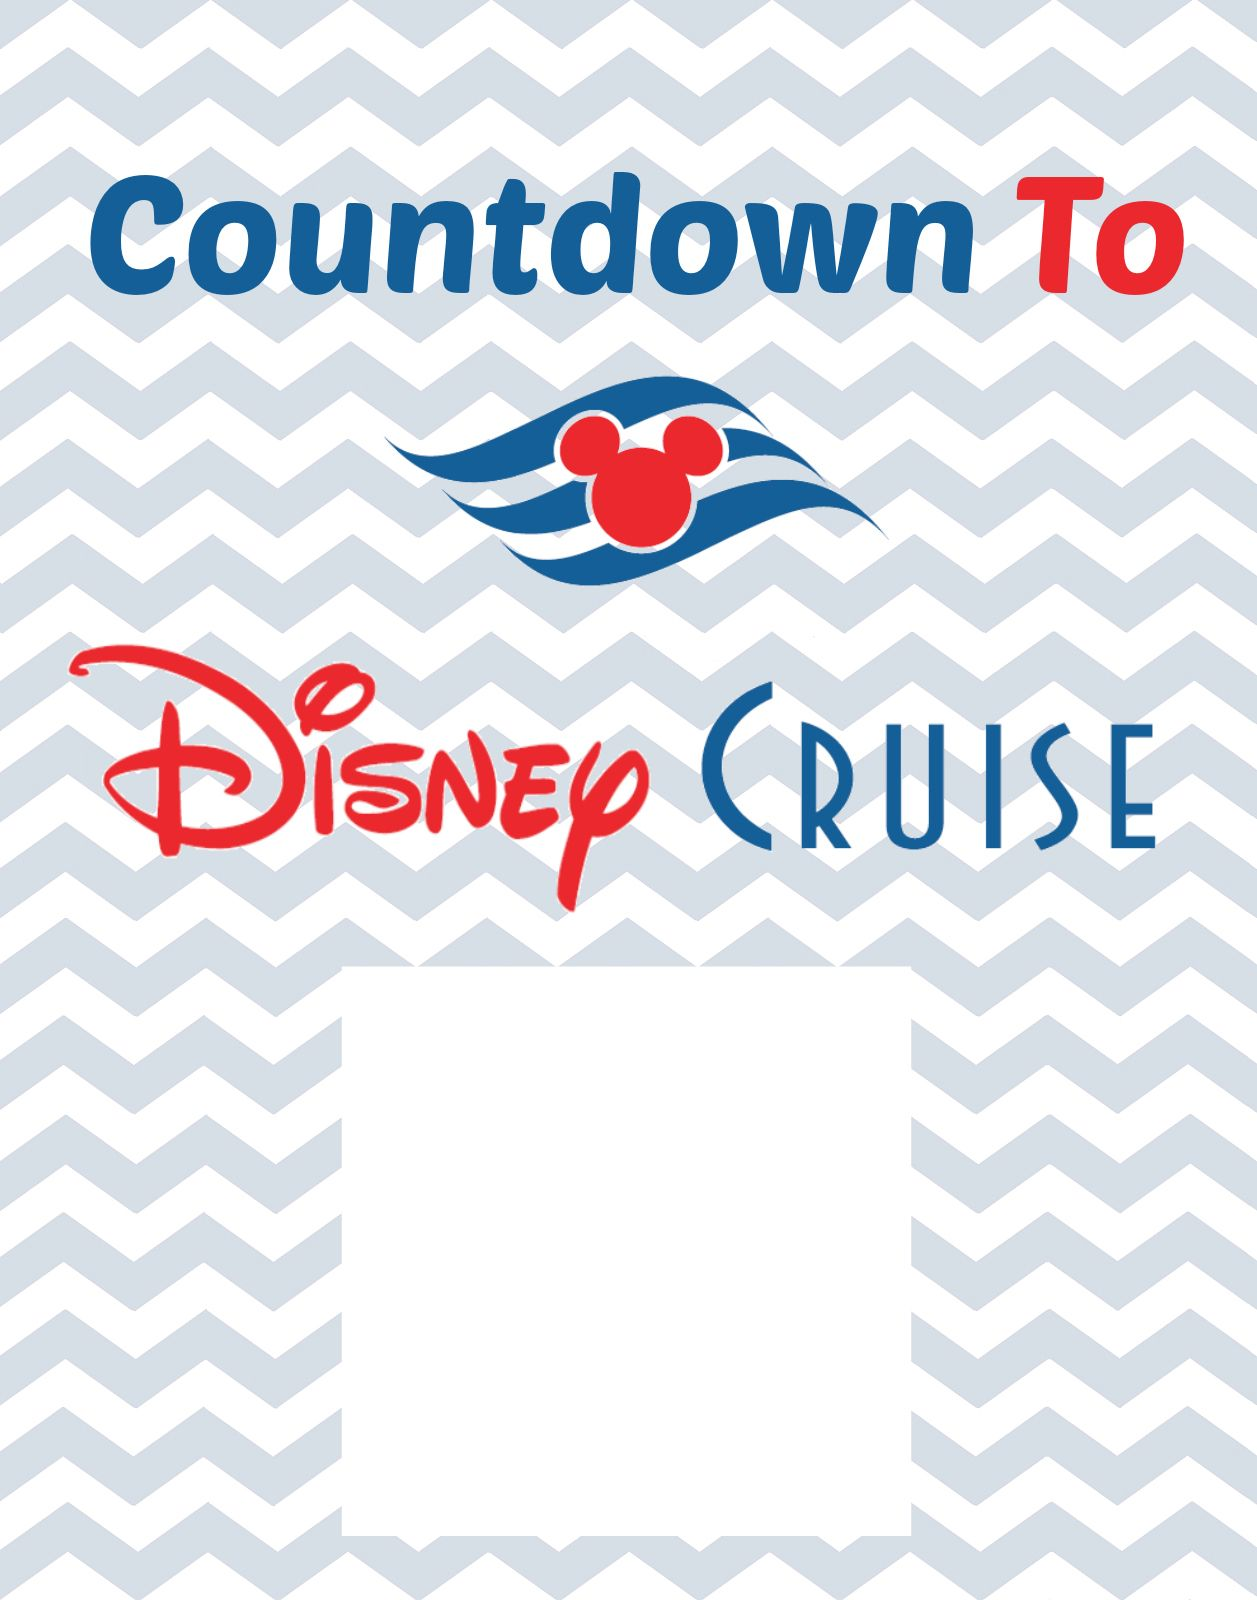 photo relating to Disney Countdown Calendar Printable identified as Countdown In direction of Disney Cruise Totally free Printable Disney Cruise